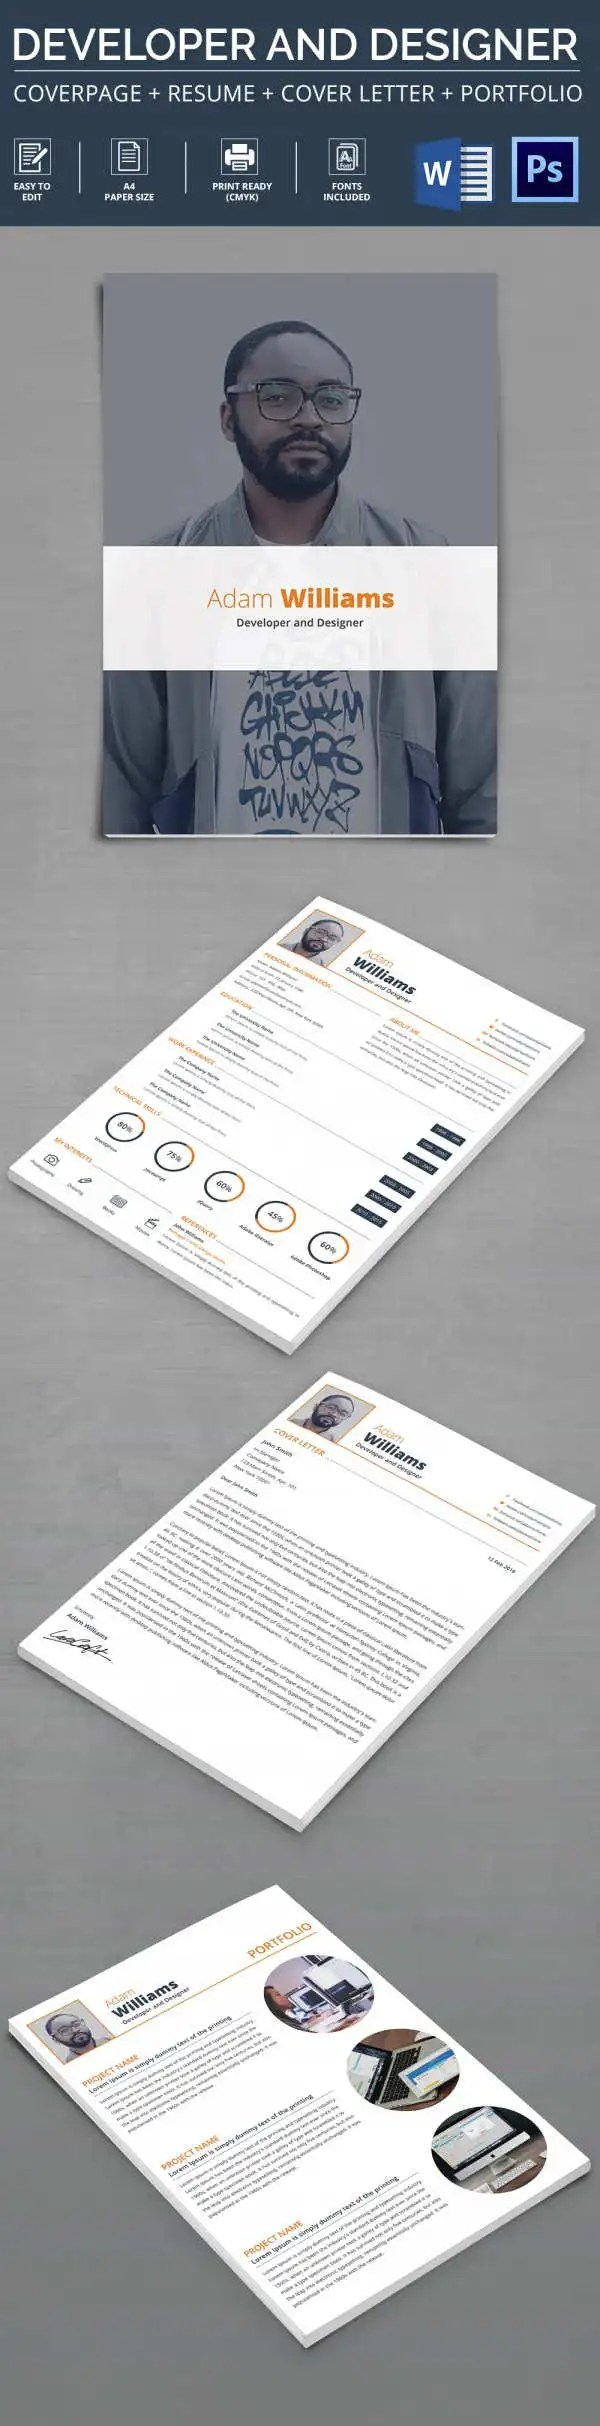 Fantastic Ready Made Resume Format Gallery Entry Level Resume